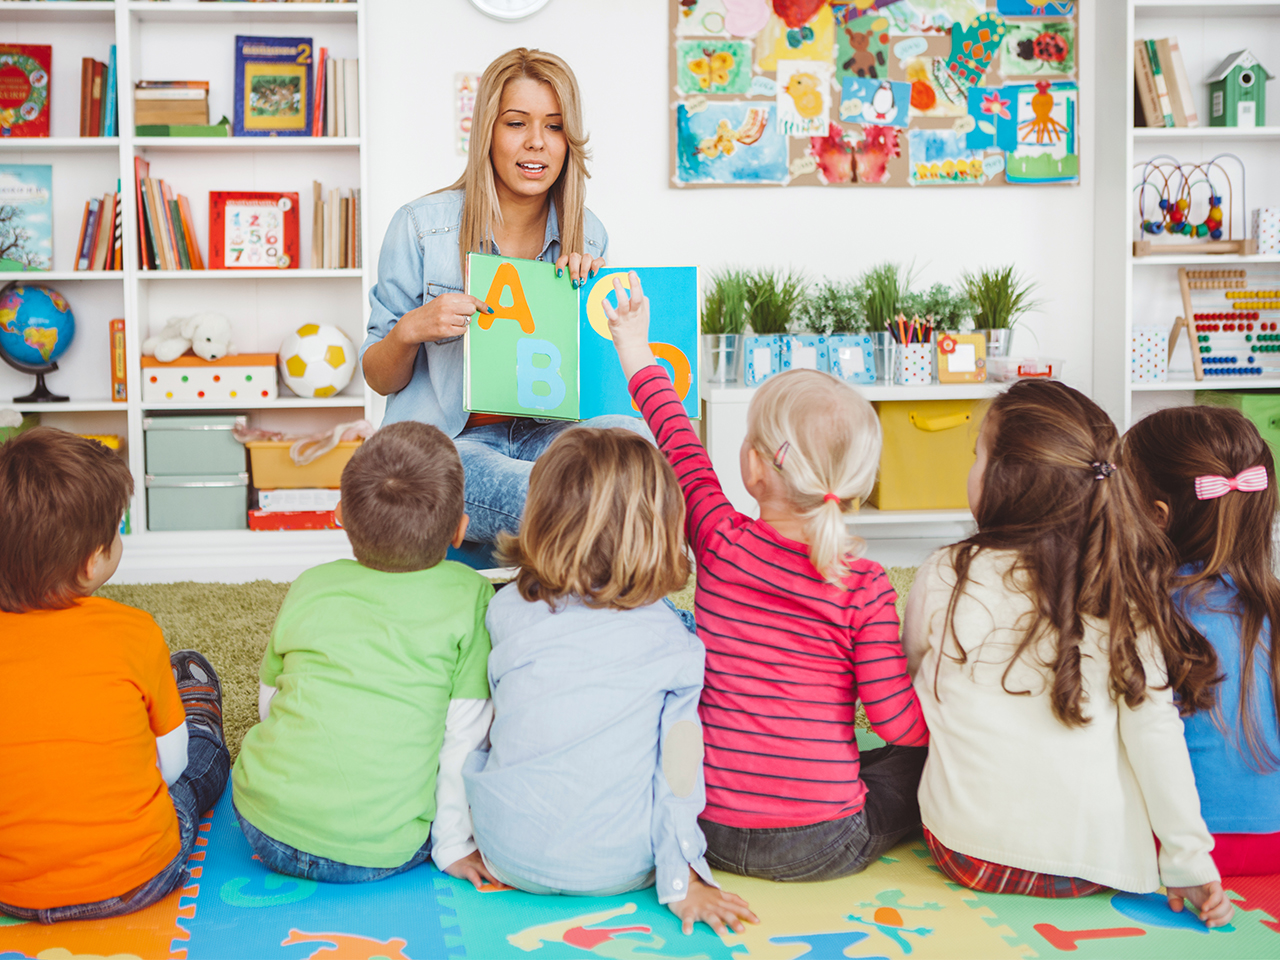 8 ways to piss off your kid's daycare teacher